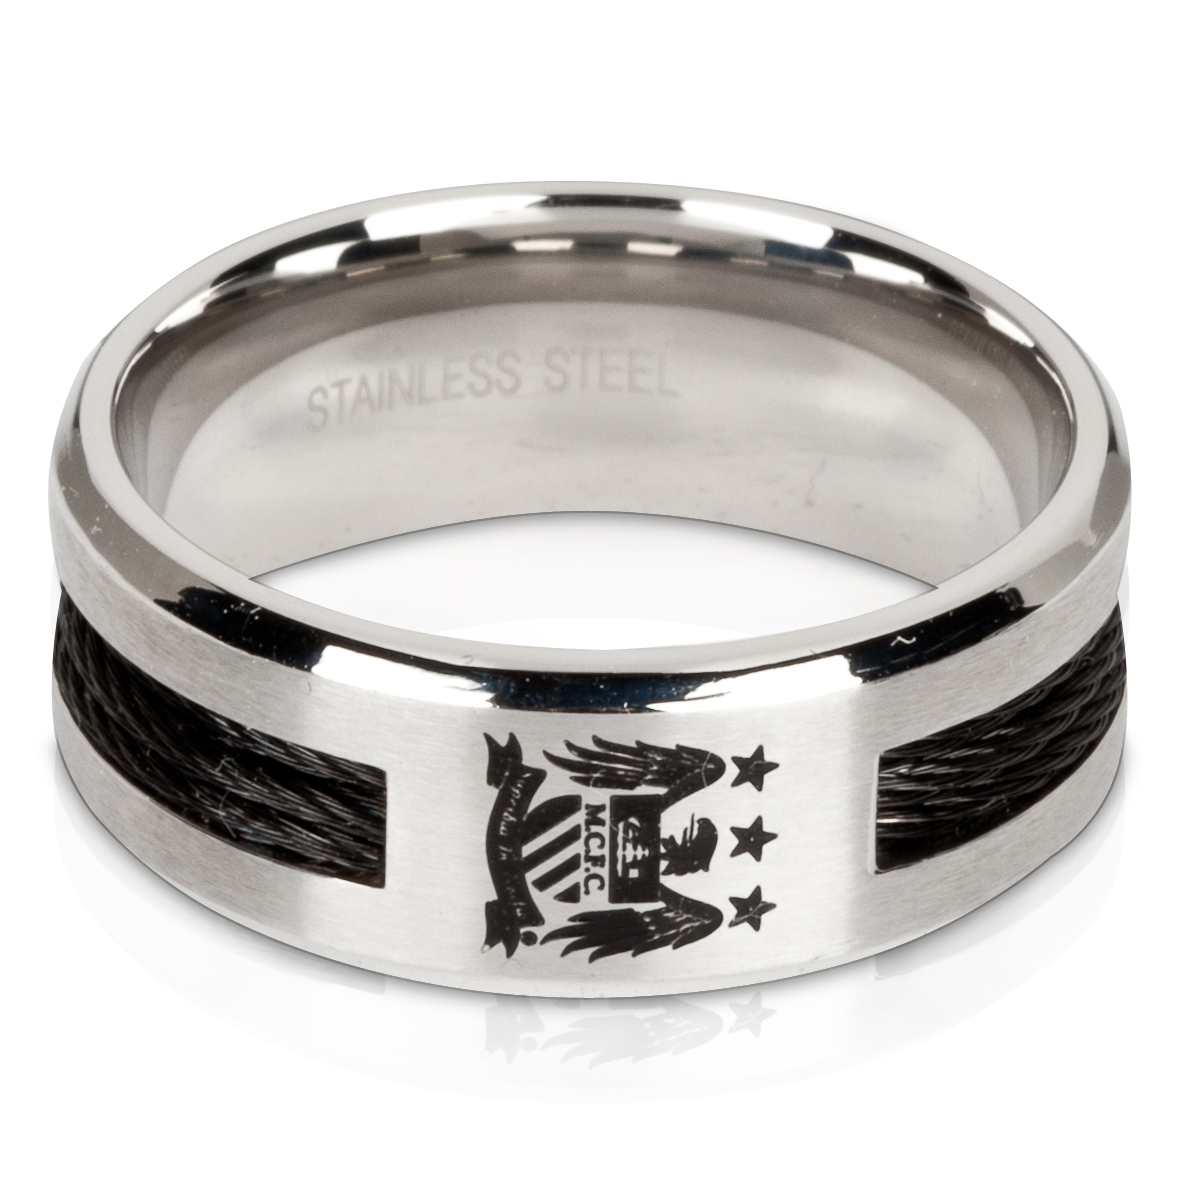 Manchester City Stainless Steel Black Inlay 10mm Band Ring